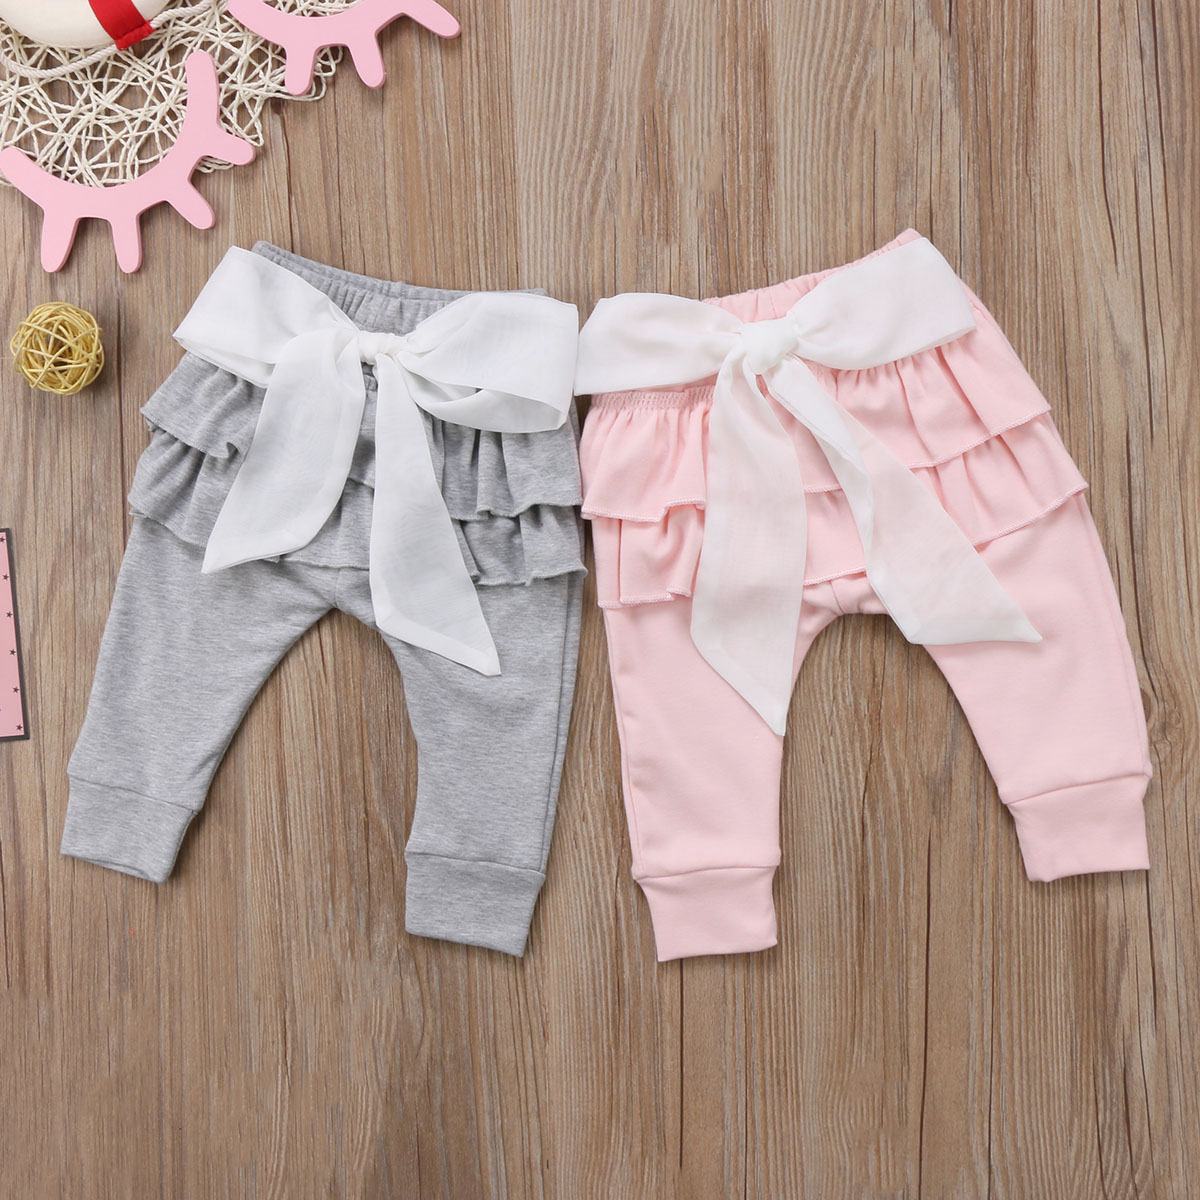 Infant Baby Girl Layered Ruffle Pants Toddler Kid Long Pants Bowknot Casual Bottoms Clothing